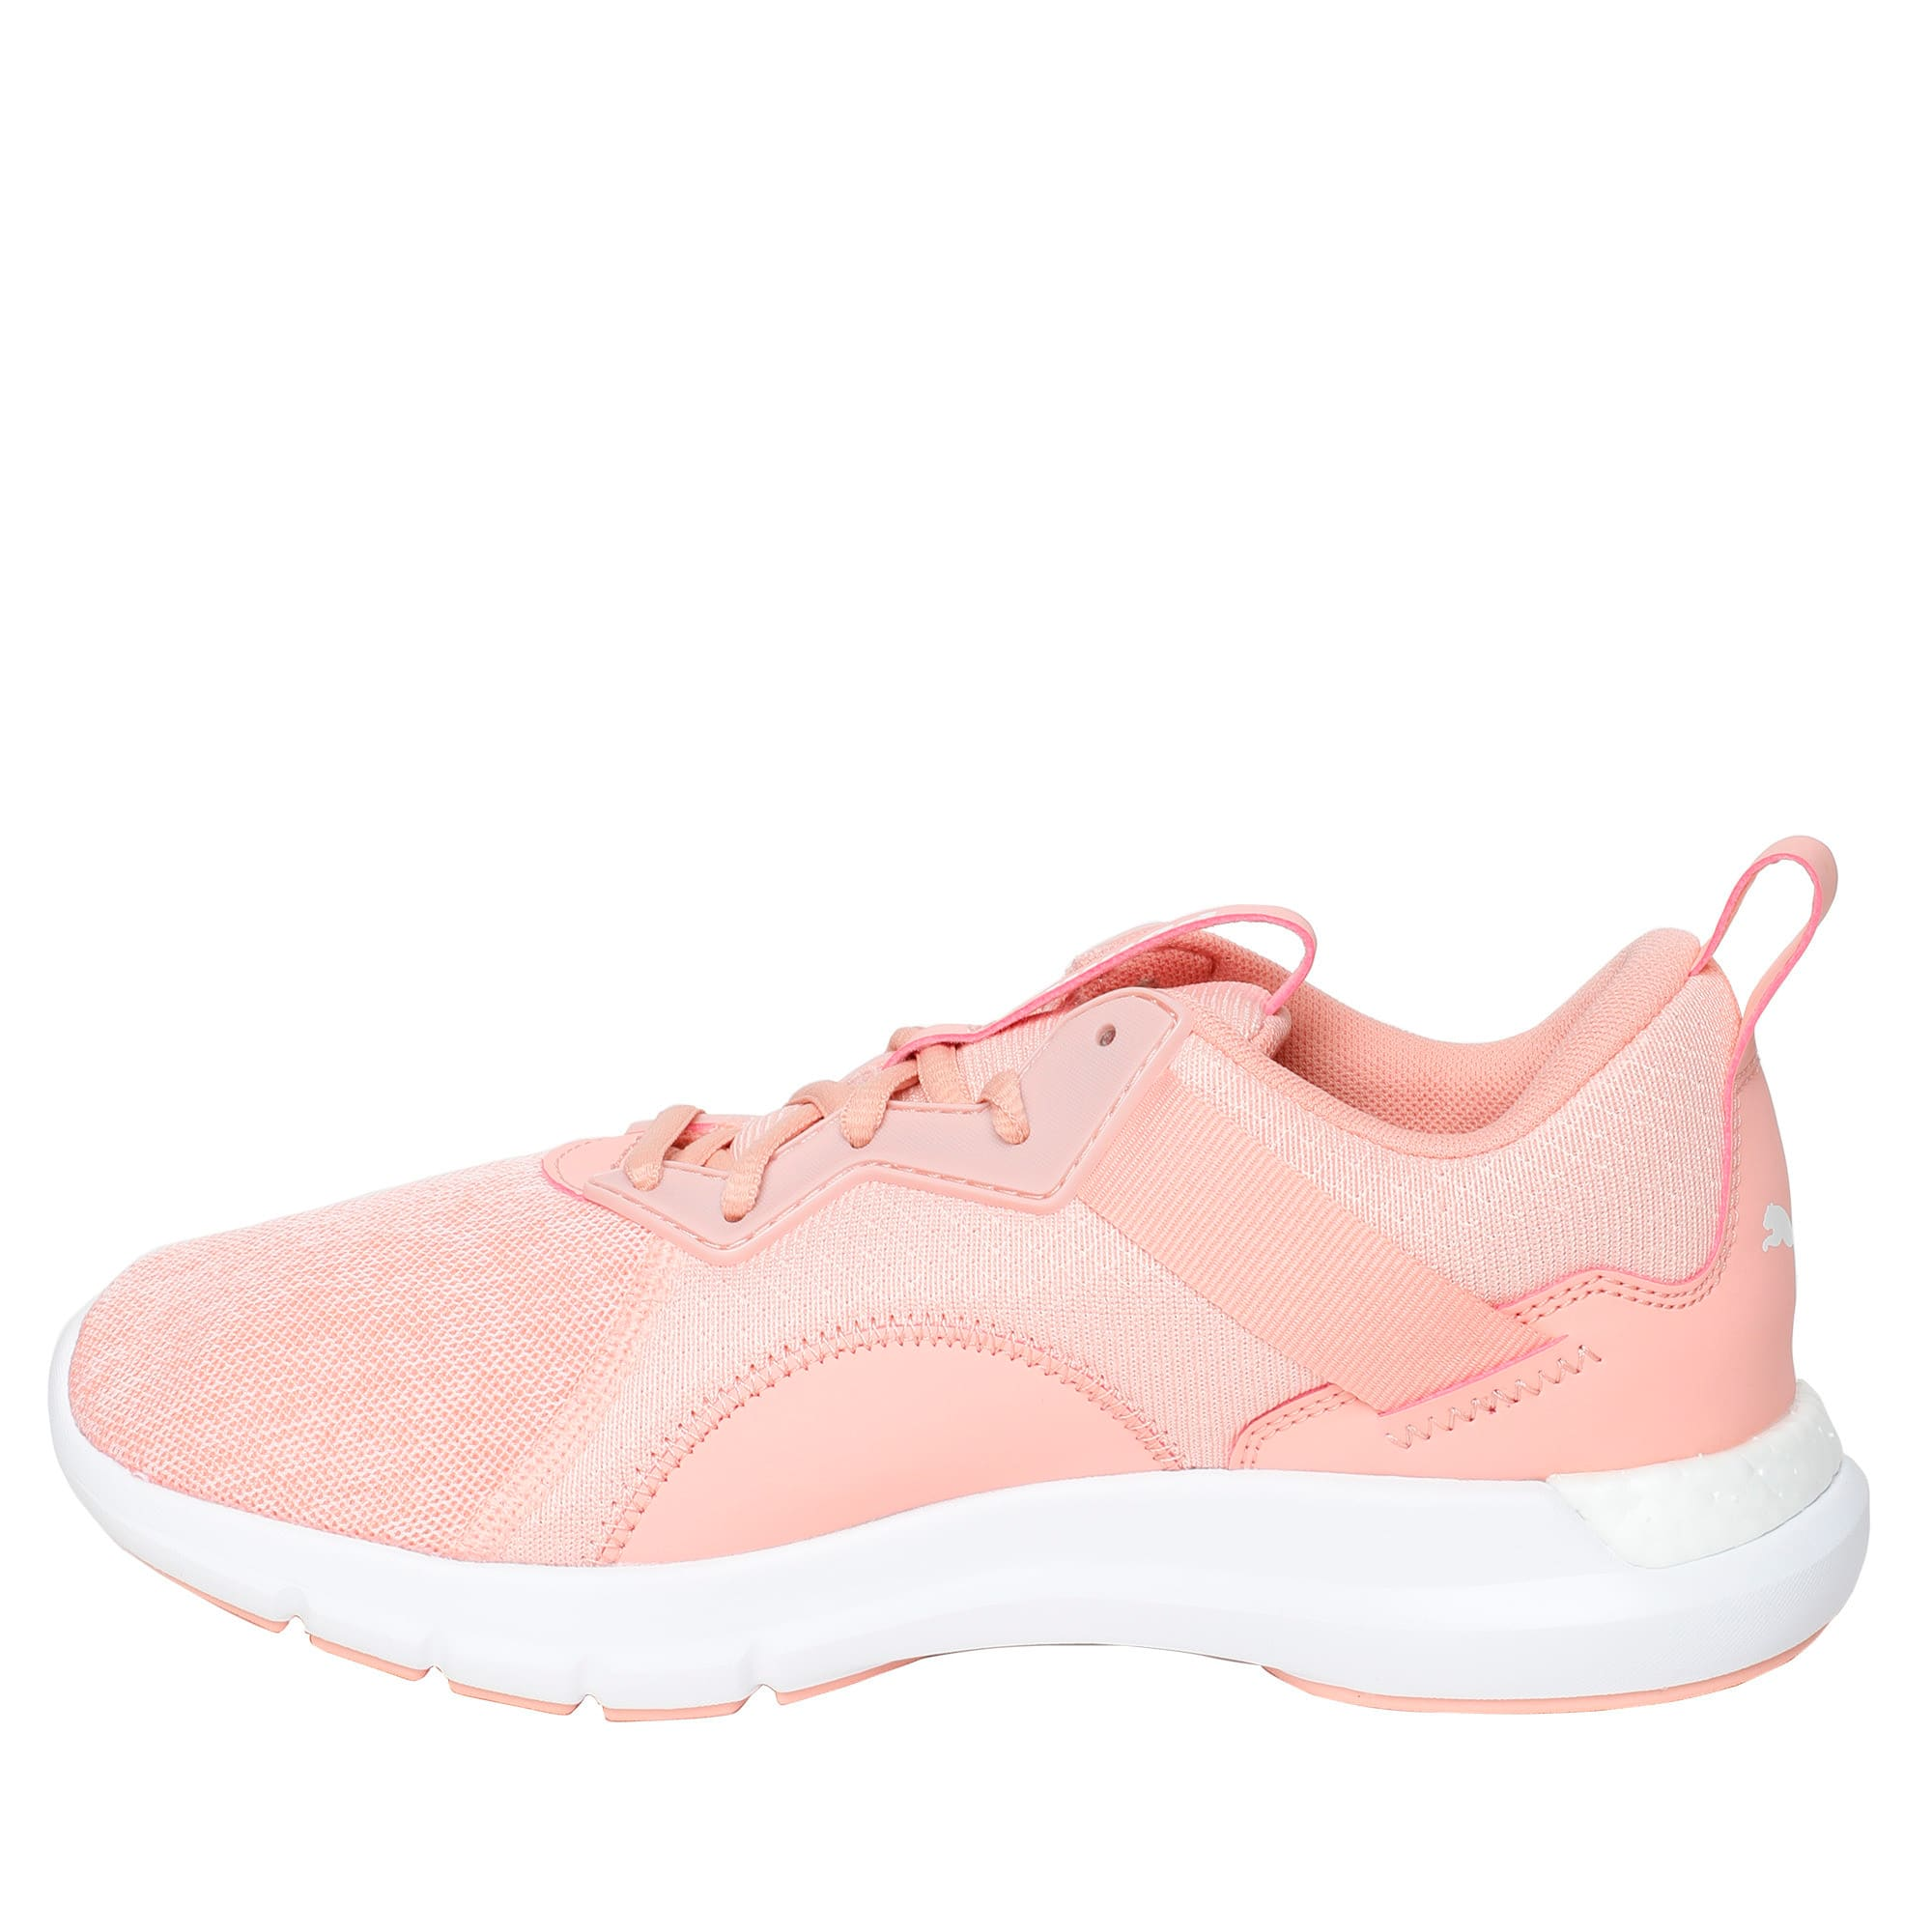 Thumbnail 1 of NRGY Dynamo Futuro Wns Puma Black-Puma W, Peach Bud-Puma White, medium-IND